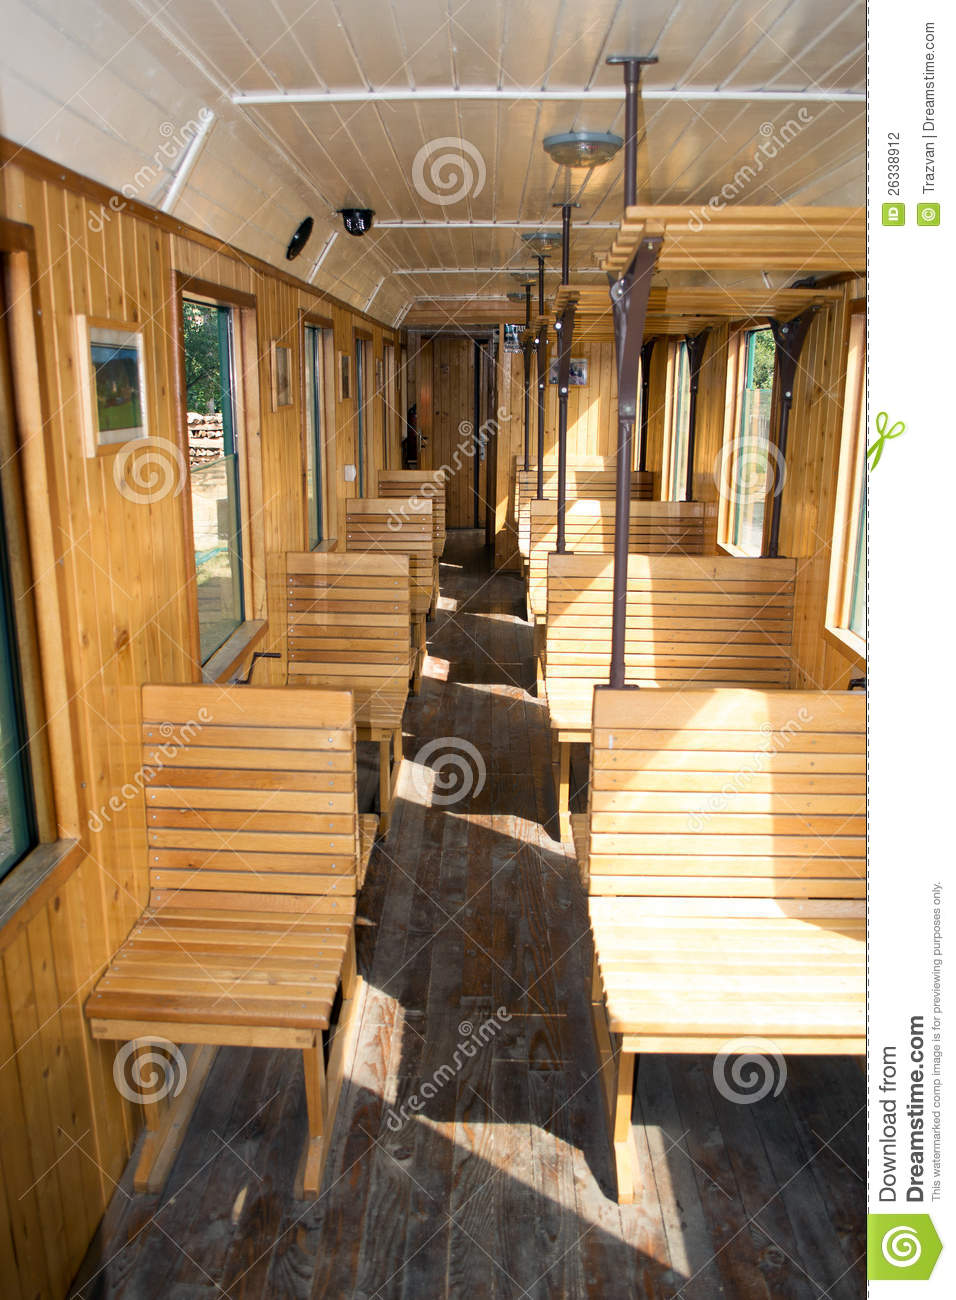 Old Passenger Rail Car Stock Photography - Image: 26338912